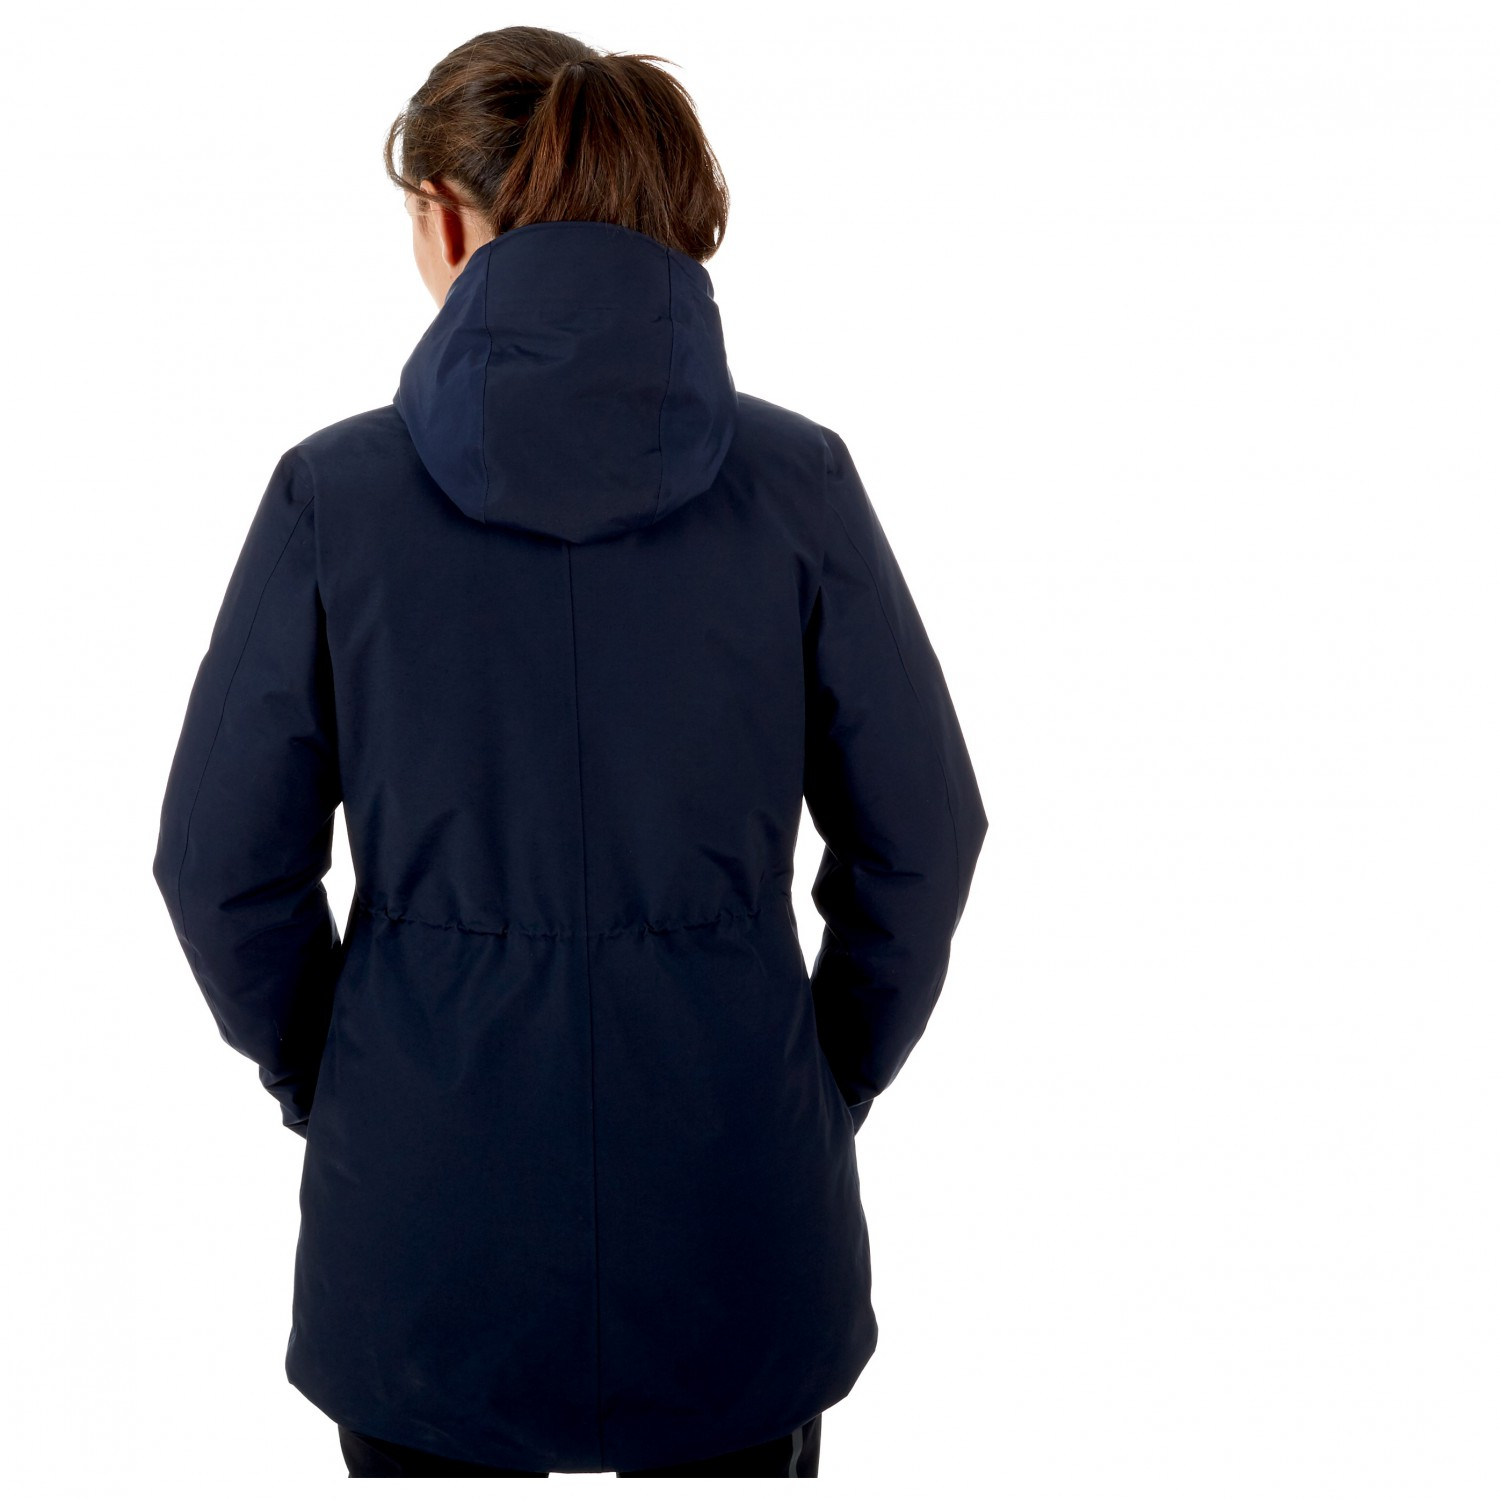 8d121773 Mammut Chamuera HS Thermo Hooded Parka - Coat Women's | Buy online |  Alpinetrek.co.uk